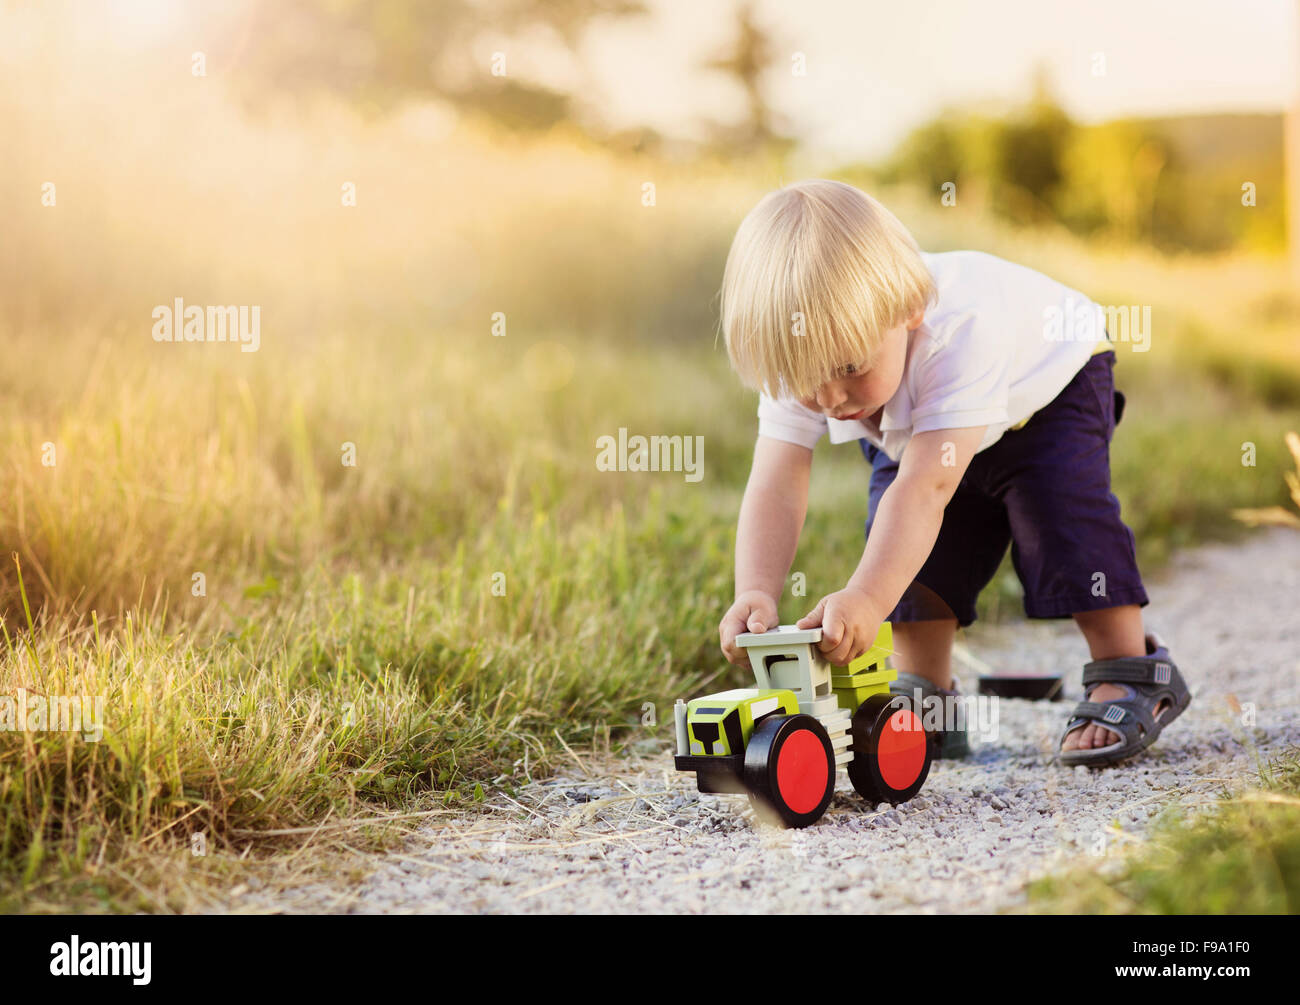 Little boy playing with toy tractor on countryside road Stock Photo